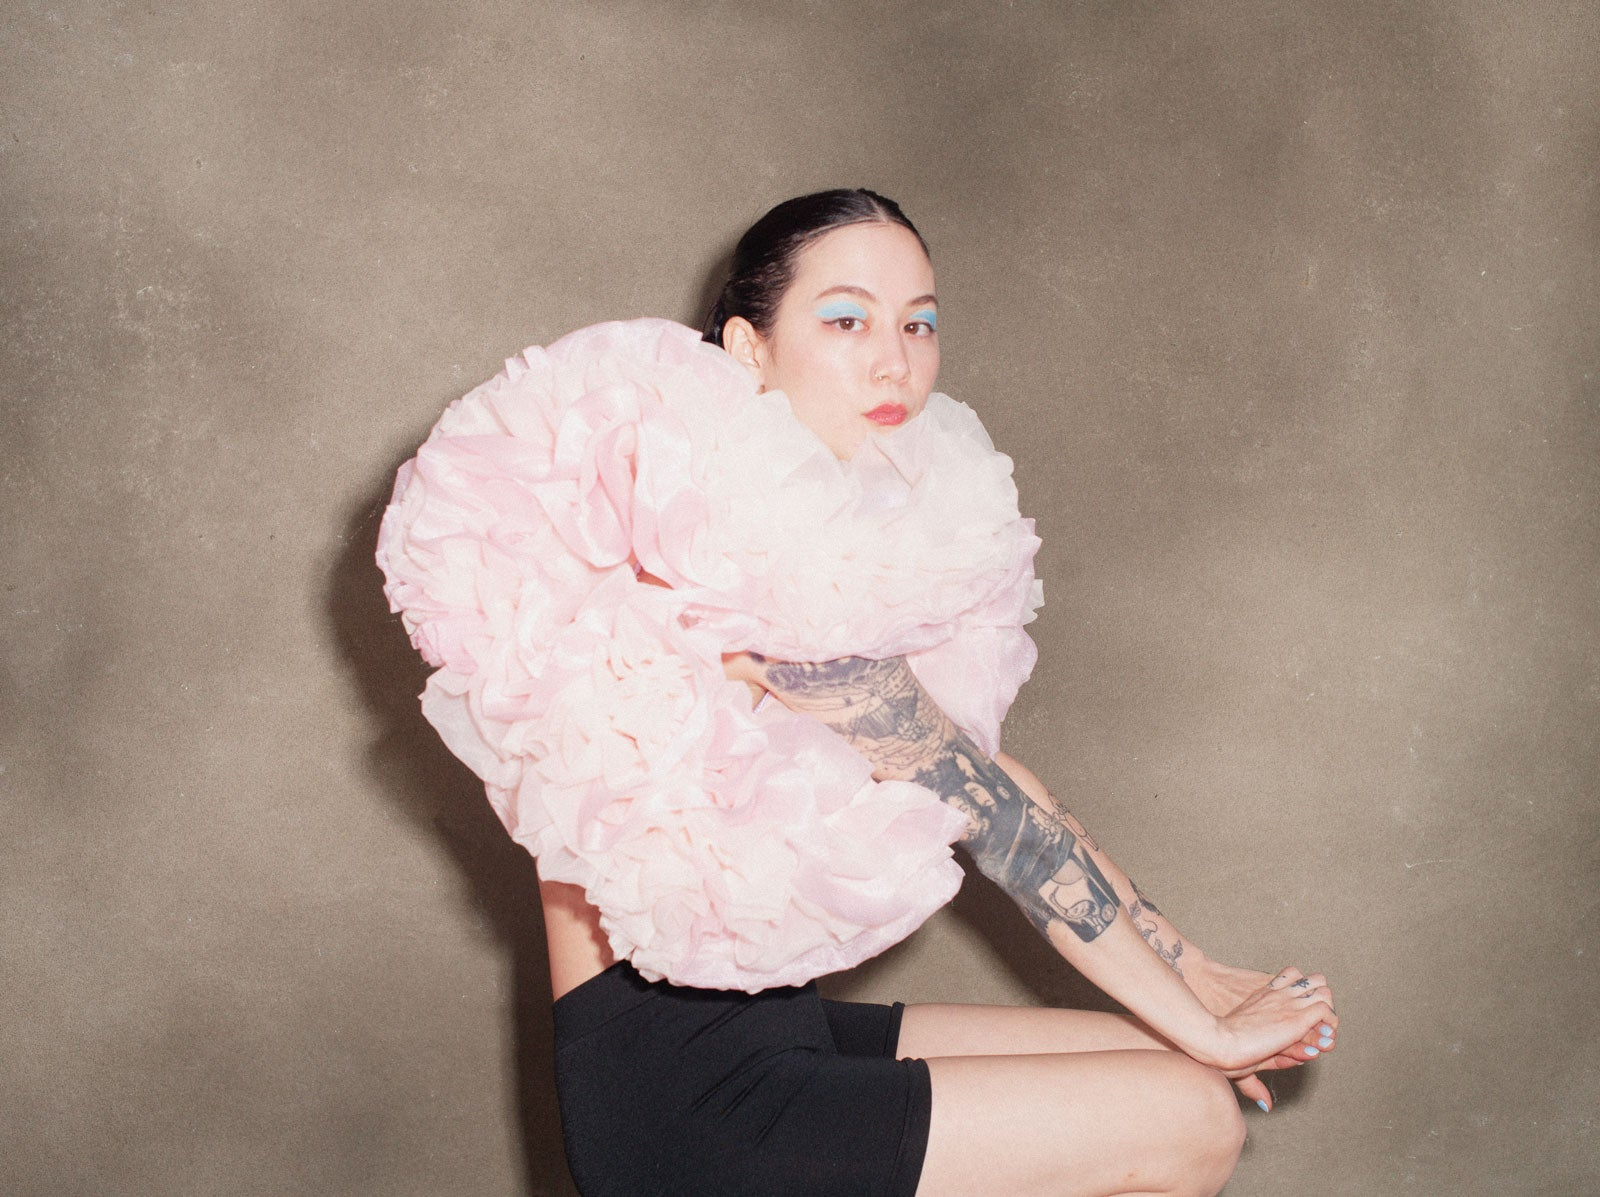 Michelle Zauner sitting sideways on a stool, wearing an oversized pink ruffled top, black shorts and bright blue eye shadow